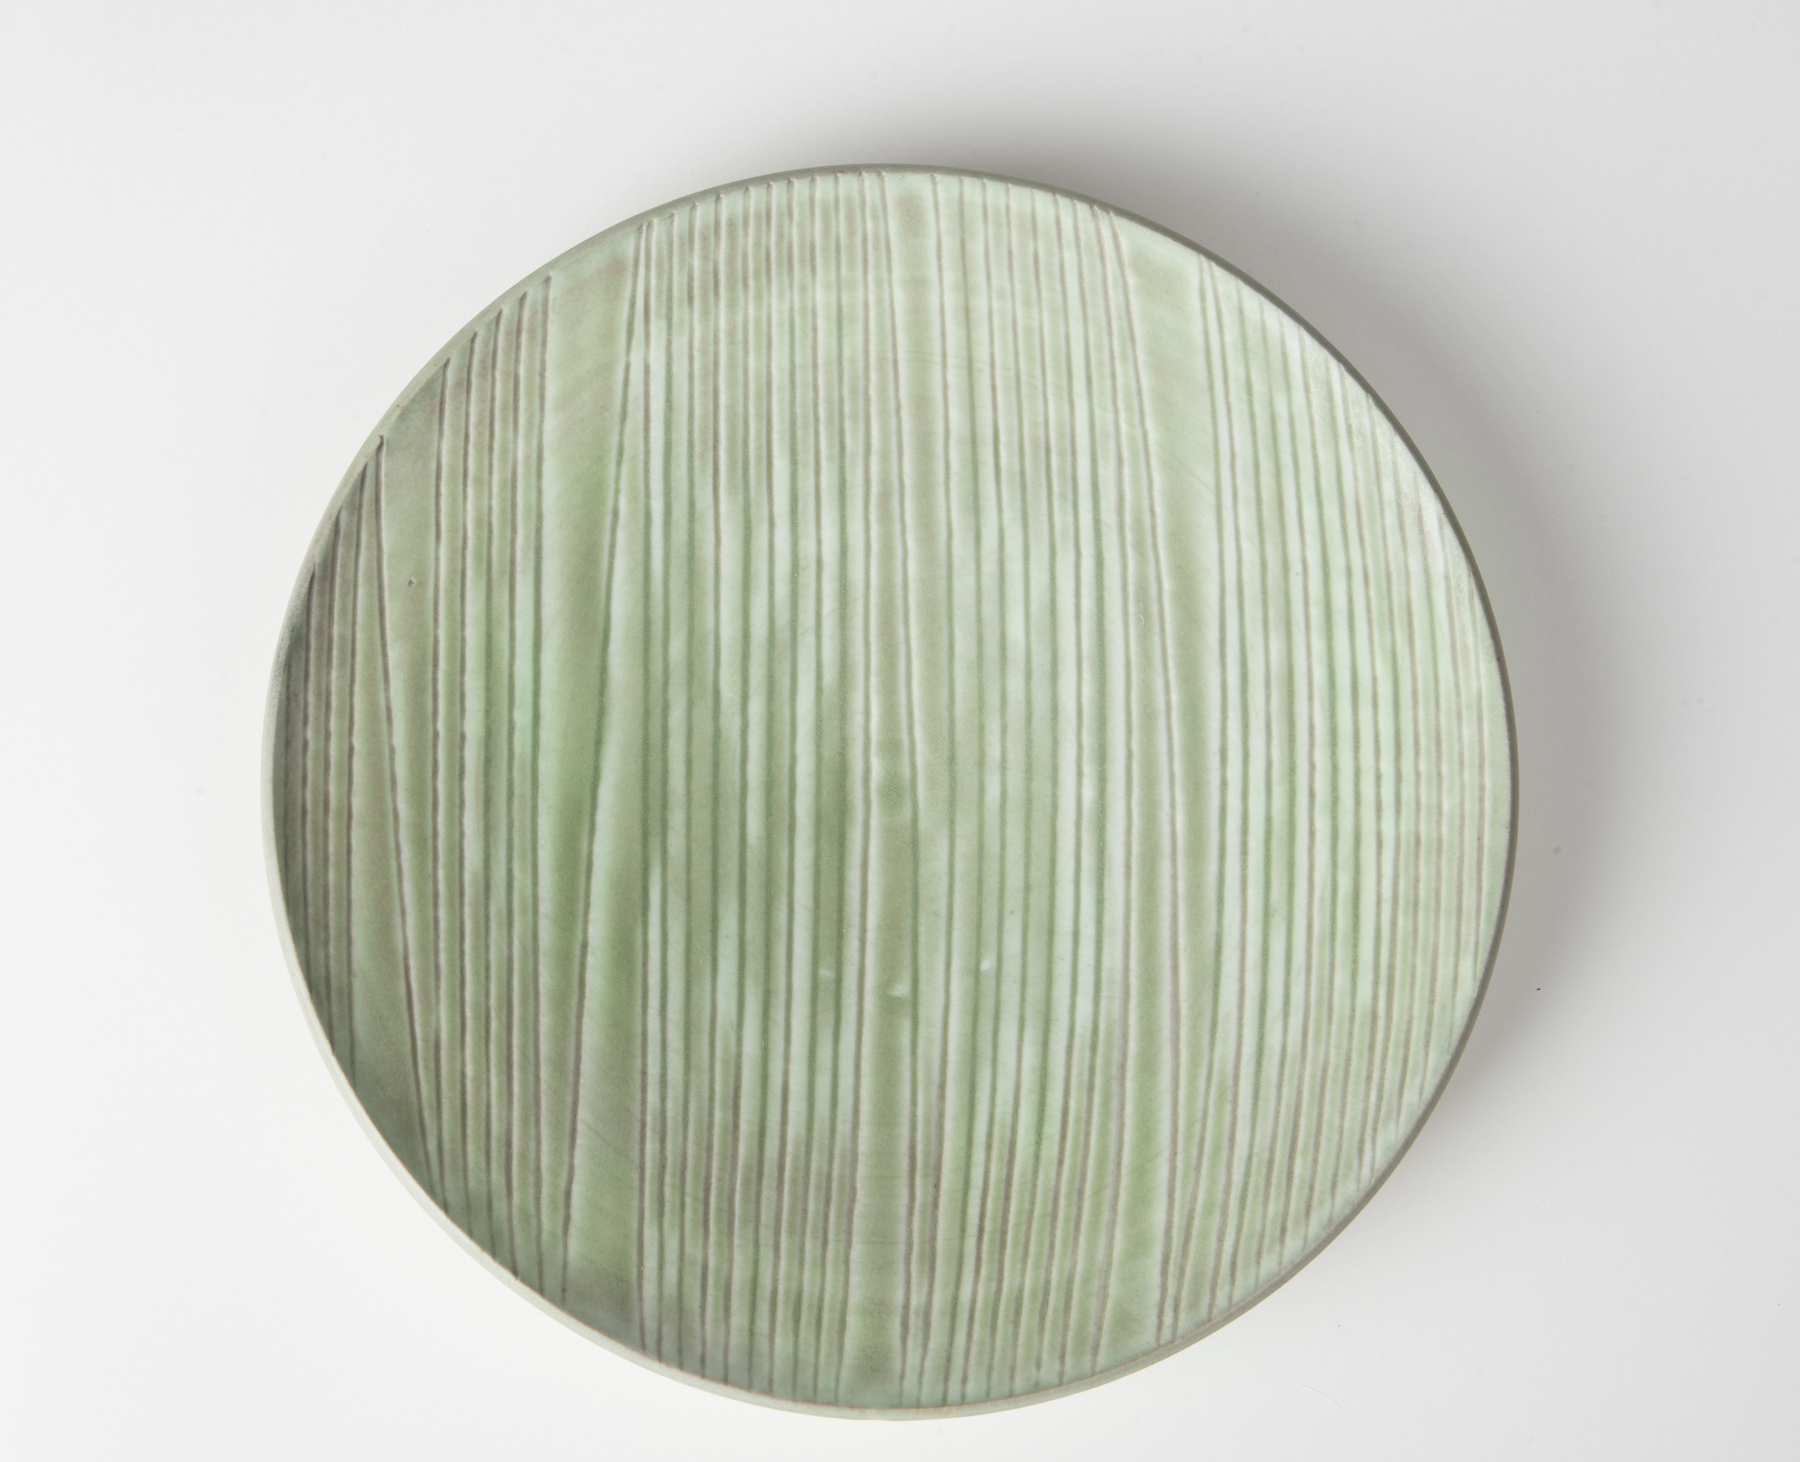 martin plate, cone 9 reduction porcelain